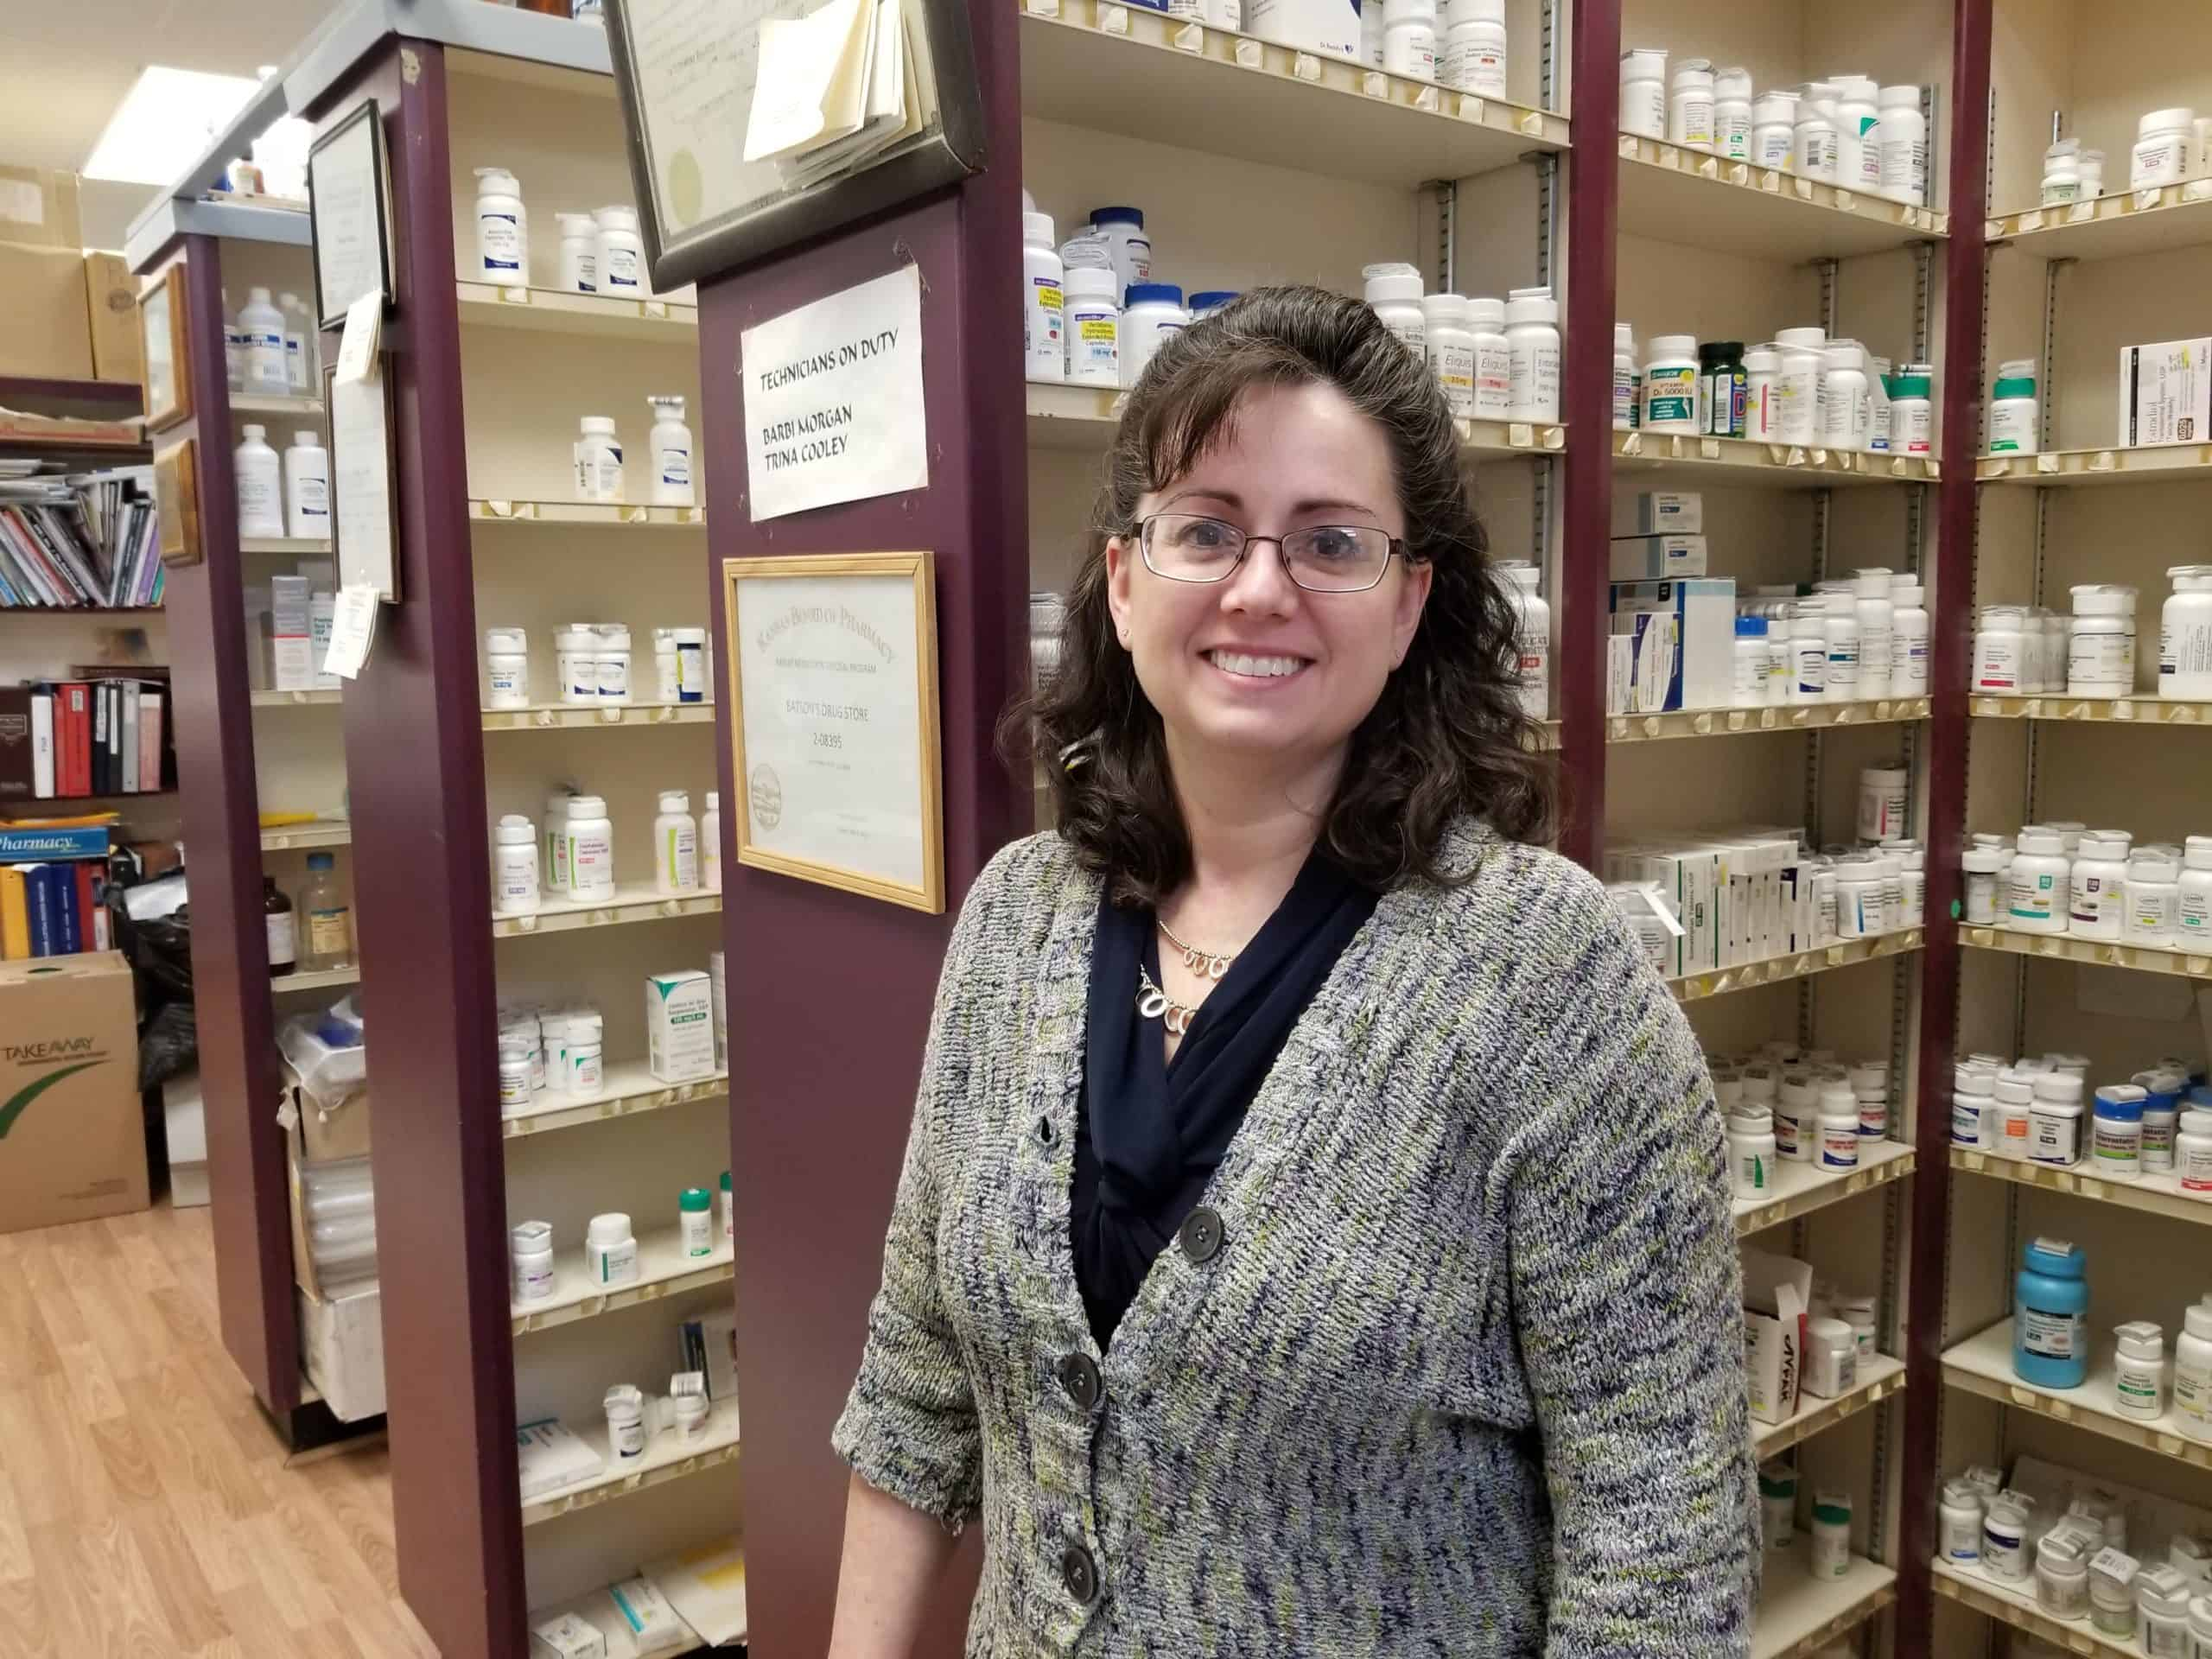 Pharmacist Spotlight - Julie Perkins